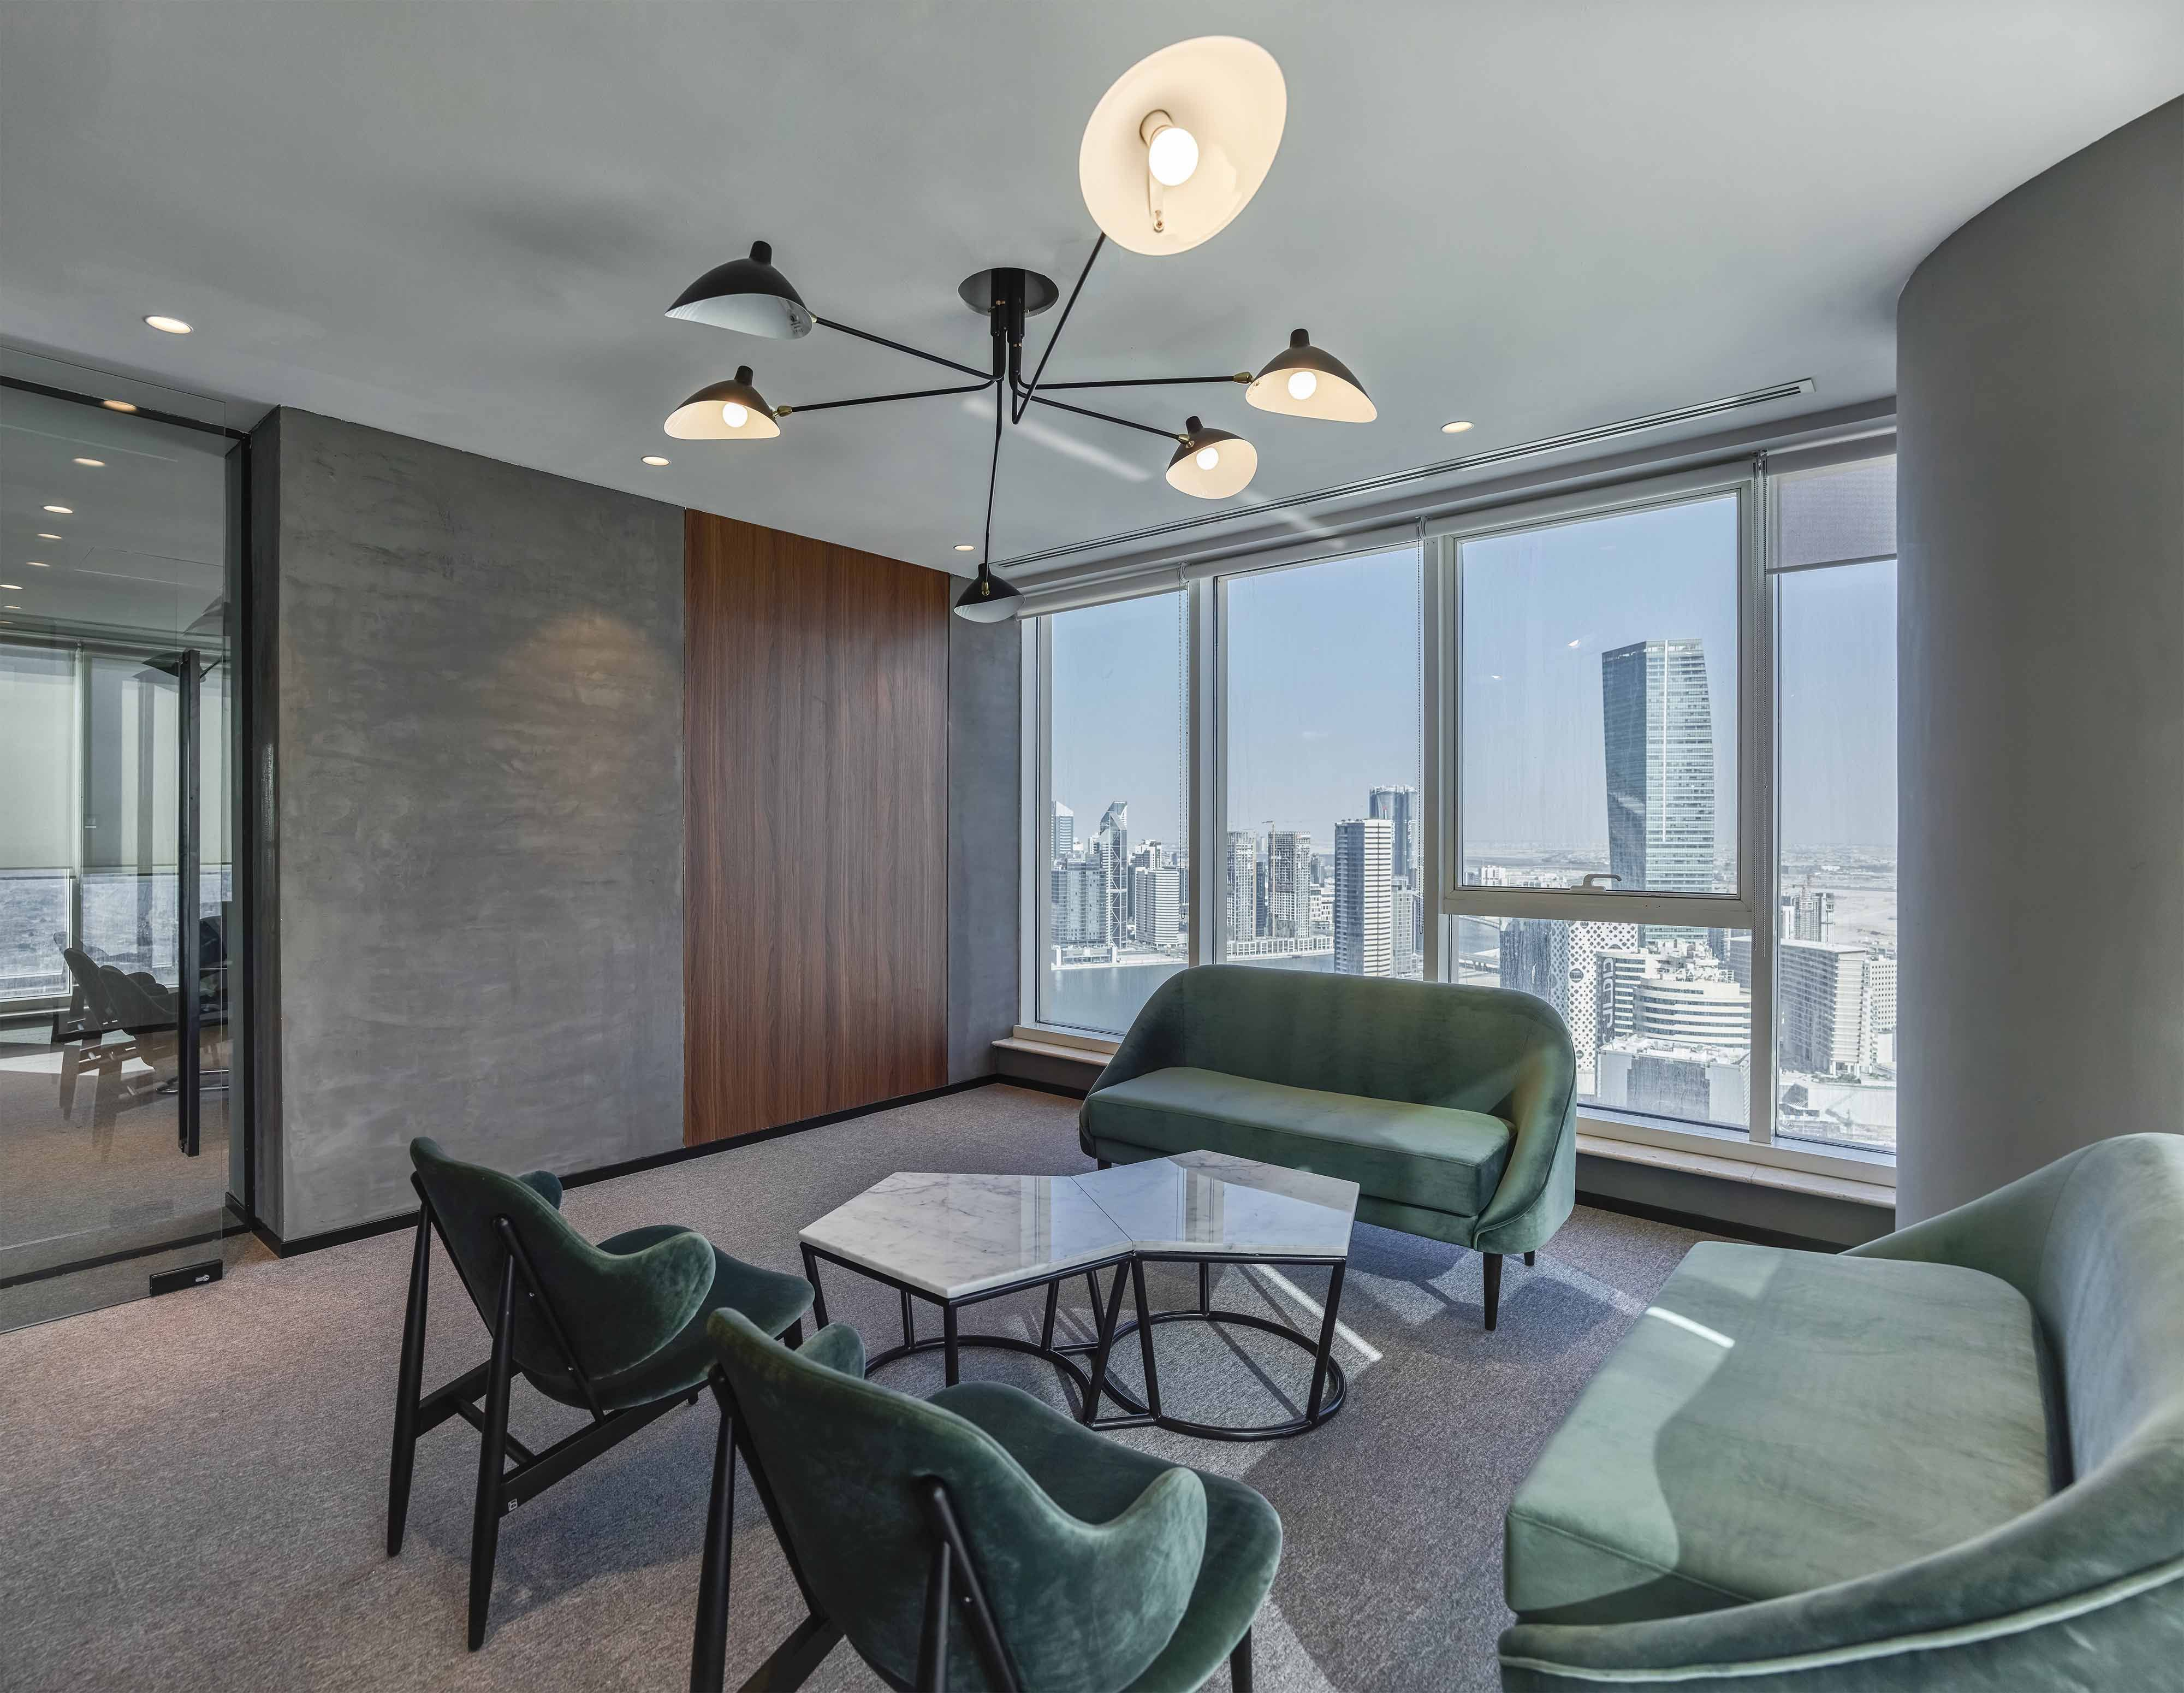 Emirates national investment office by swiss bureau interior design collaboration room